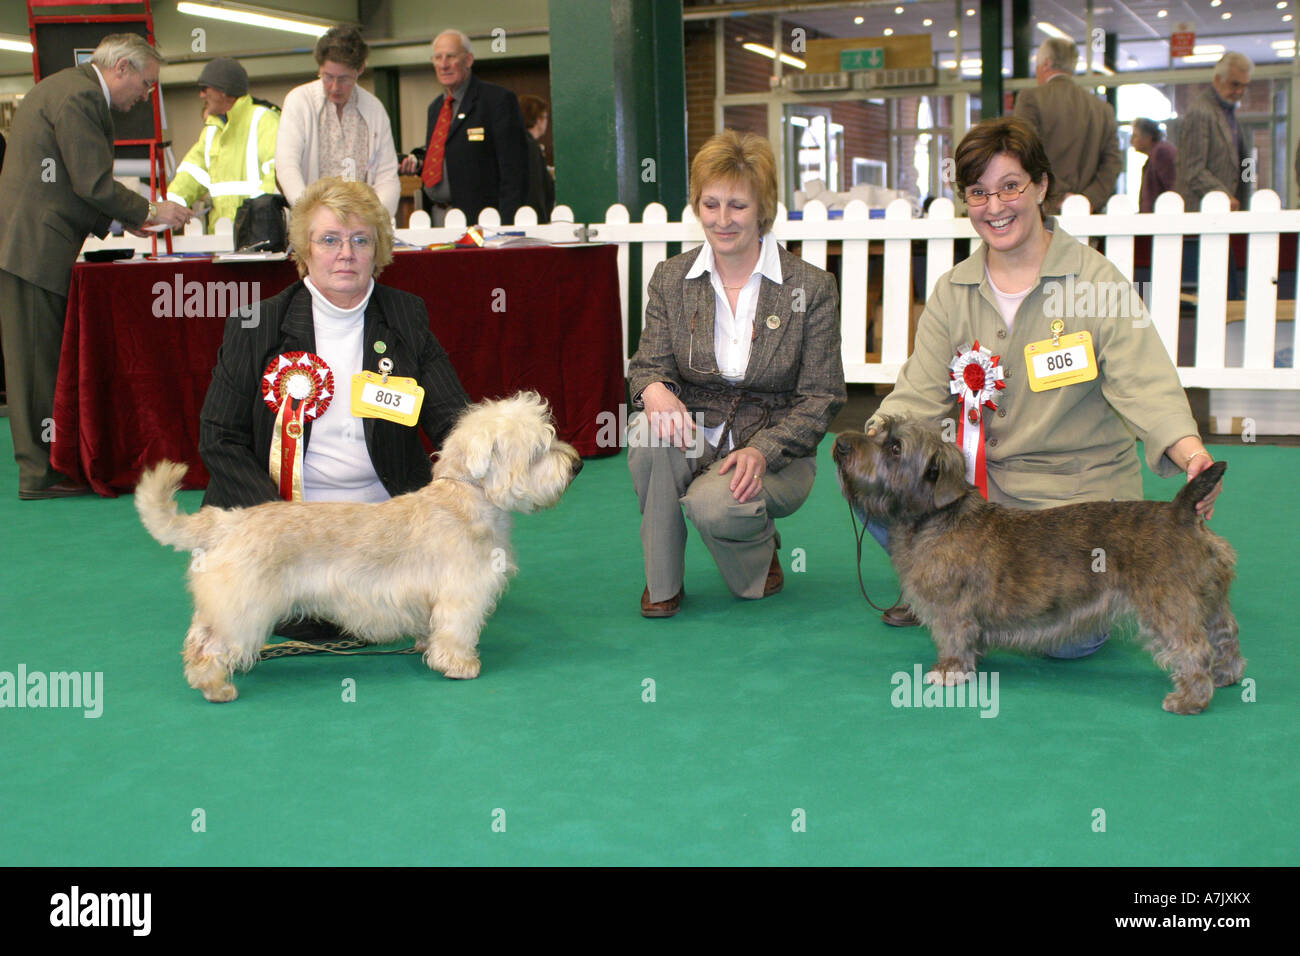 Glen of imaal terrier challenge certificate winners with judge at glen of imaal terrier challenge certificate winners with judge at the national terrier championship dog show 2007 thecheapjerseys Image collections